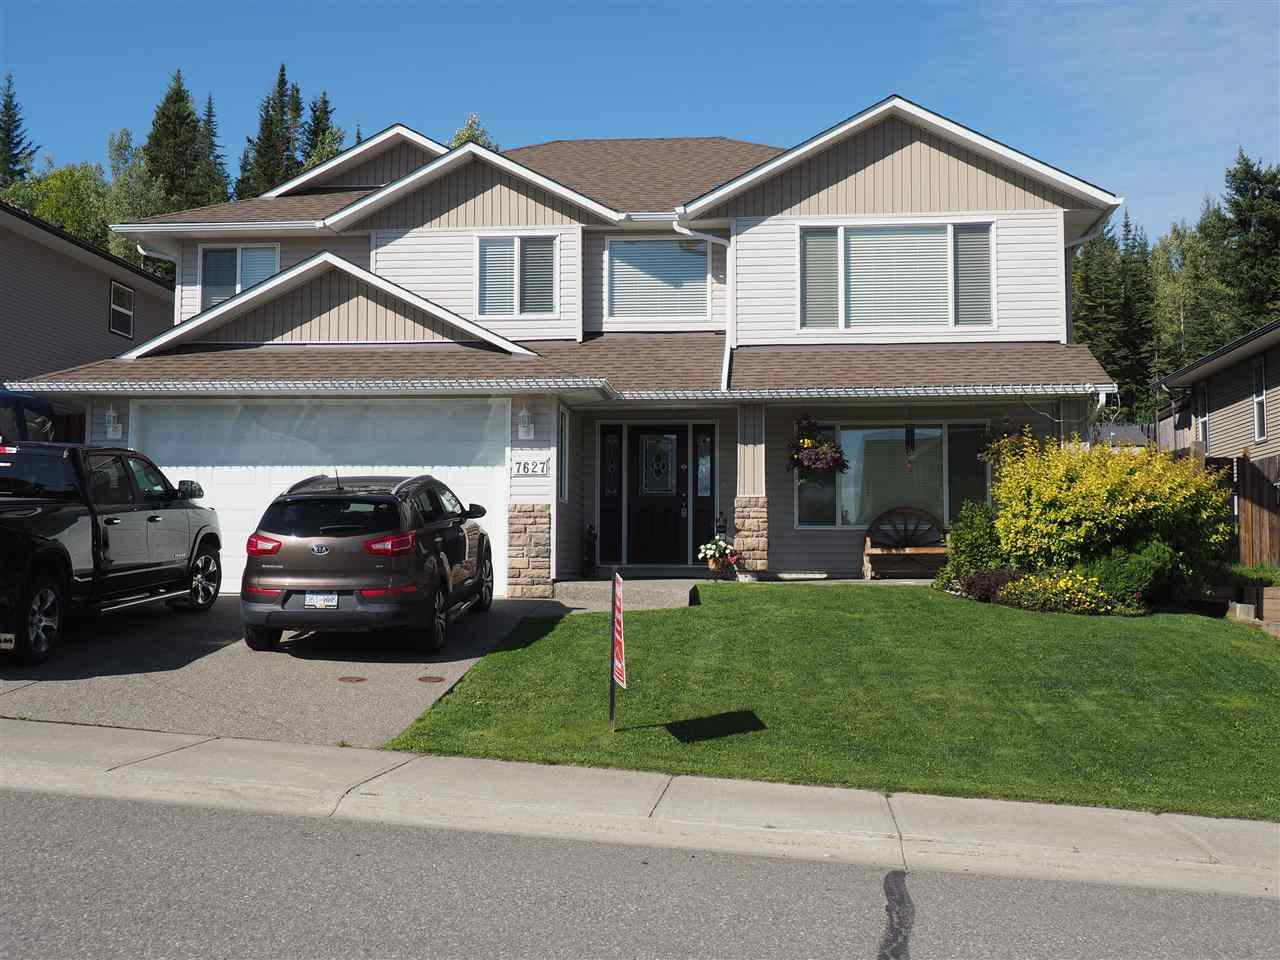 Photo 2: Photos: 7627 GRAYSHELL Road in Prince George: St. Lawrence Heights House for sale (PG City South (Zone 74))  : MLS®# R2438648